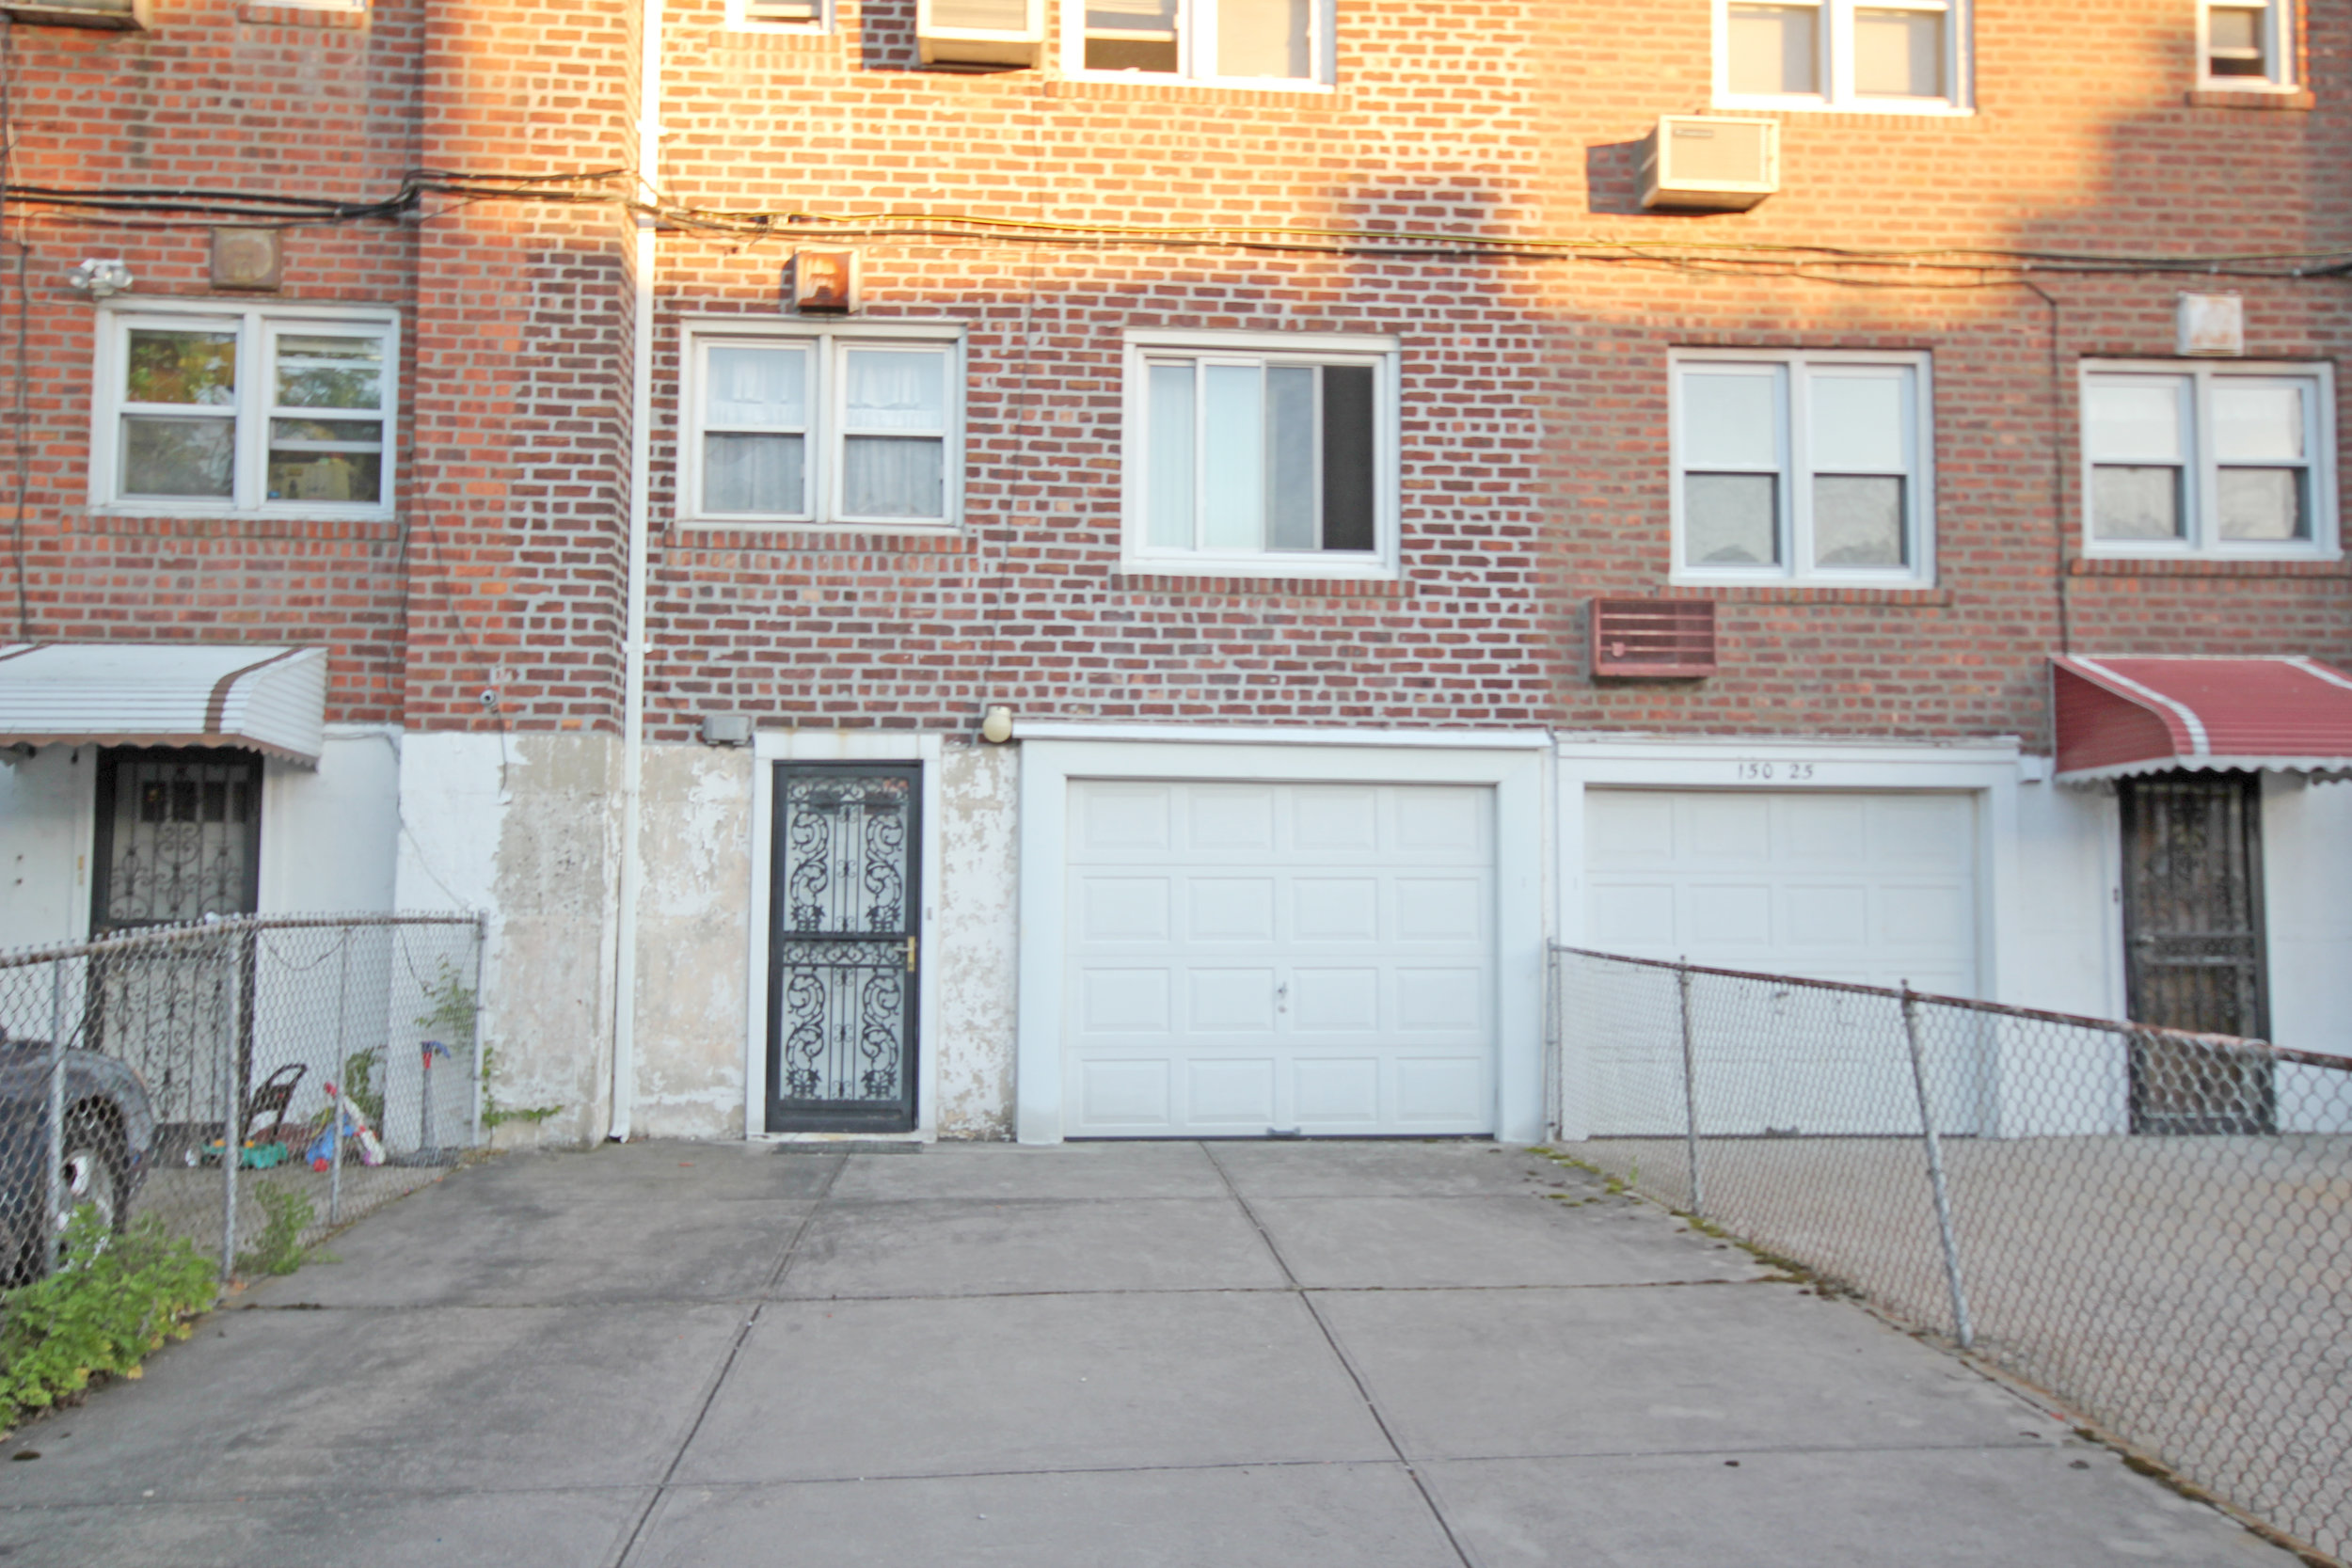 150-31_78th_Ave_garage_exterior.jpg